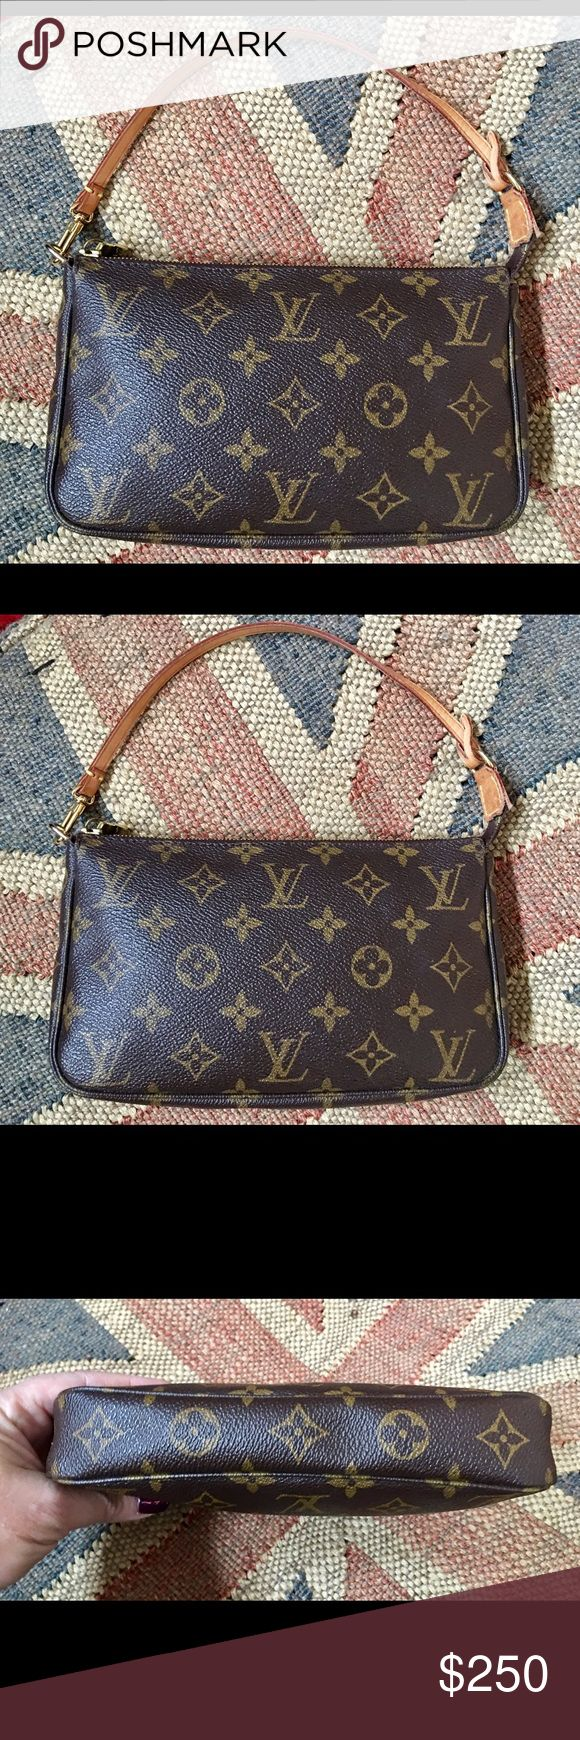 Louis Vuitton Monogram Pochette 💖Firm💖 This is an authentic Louis Vuitton monogram Pochette handbag. There is still a lot of life left in this cute little bag. Unhooks from one side to clip into another handbag if desired. Measures 9 inches long by 6 inches tall by 2 inches deep. Monogram material is pristine with no marks or tears or rips. some wear on the handle strap as you can see in photos. No trades please. Price firm. Louis Vuitton Bags